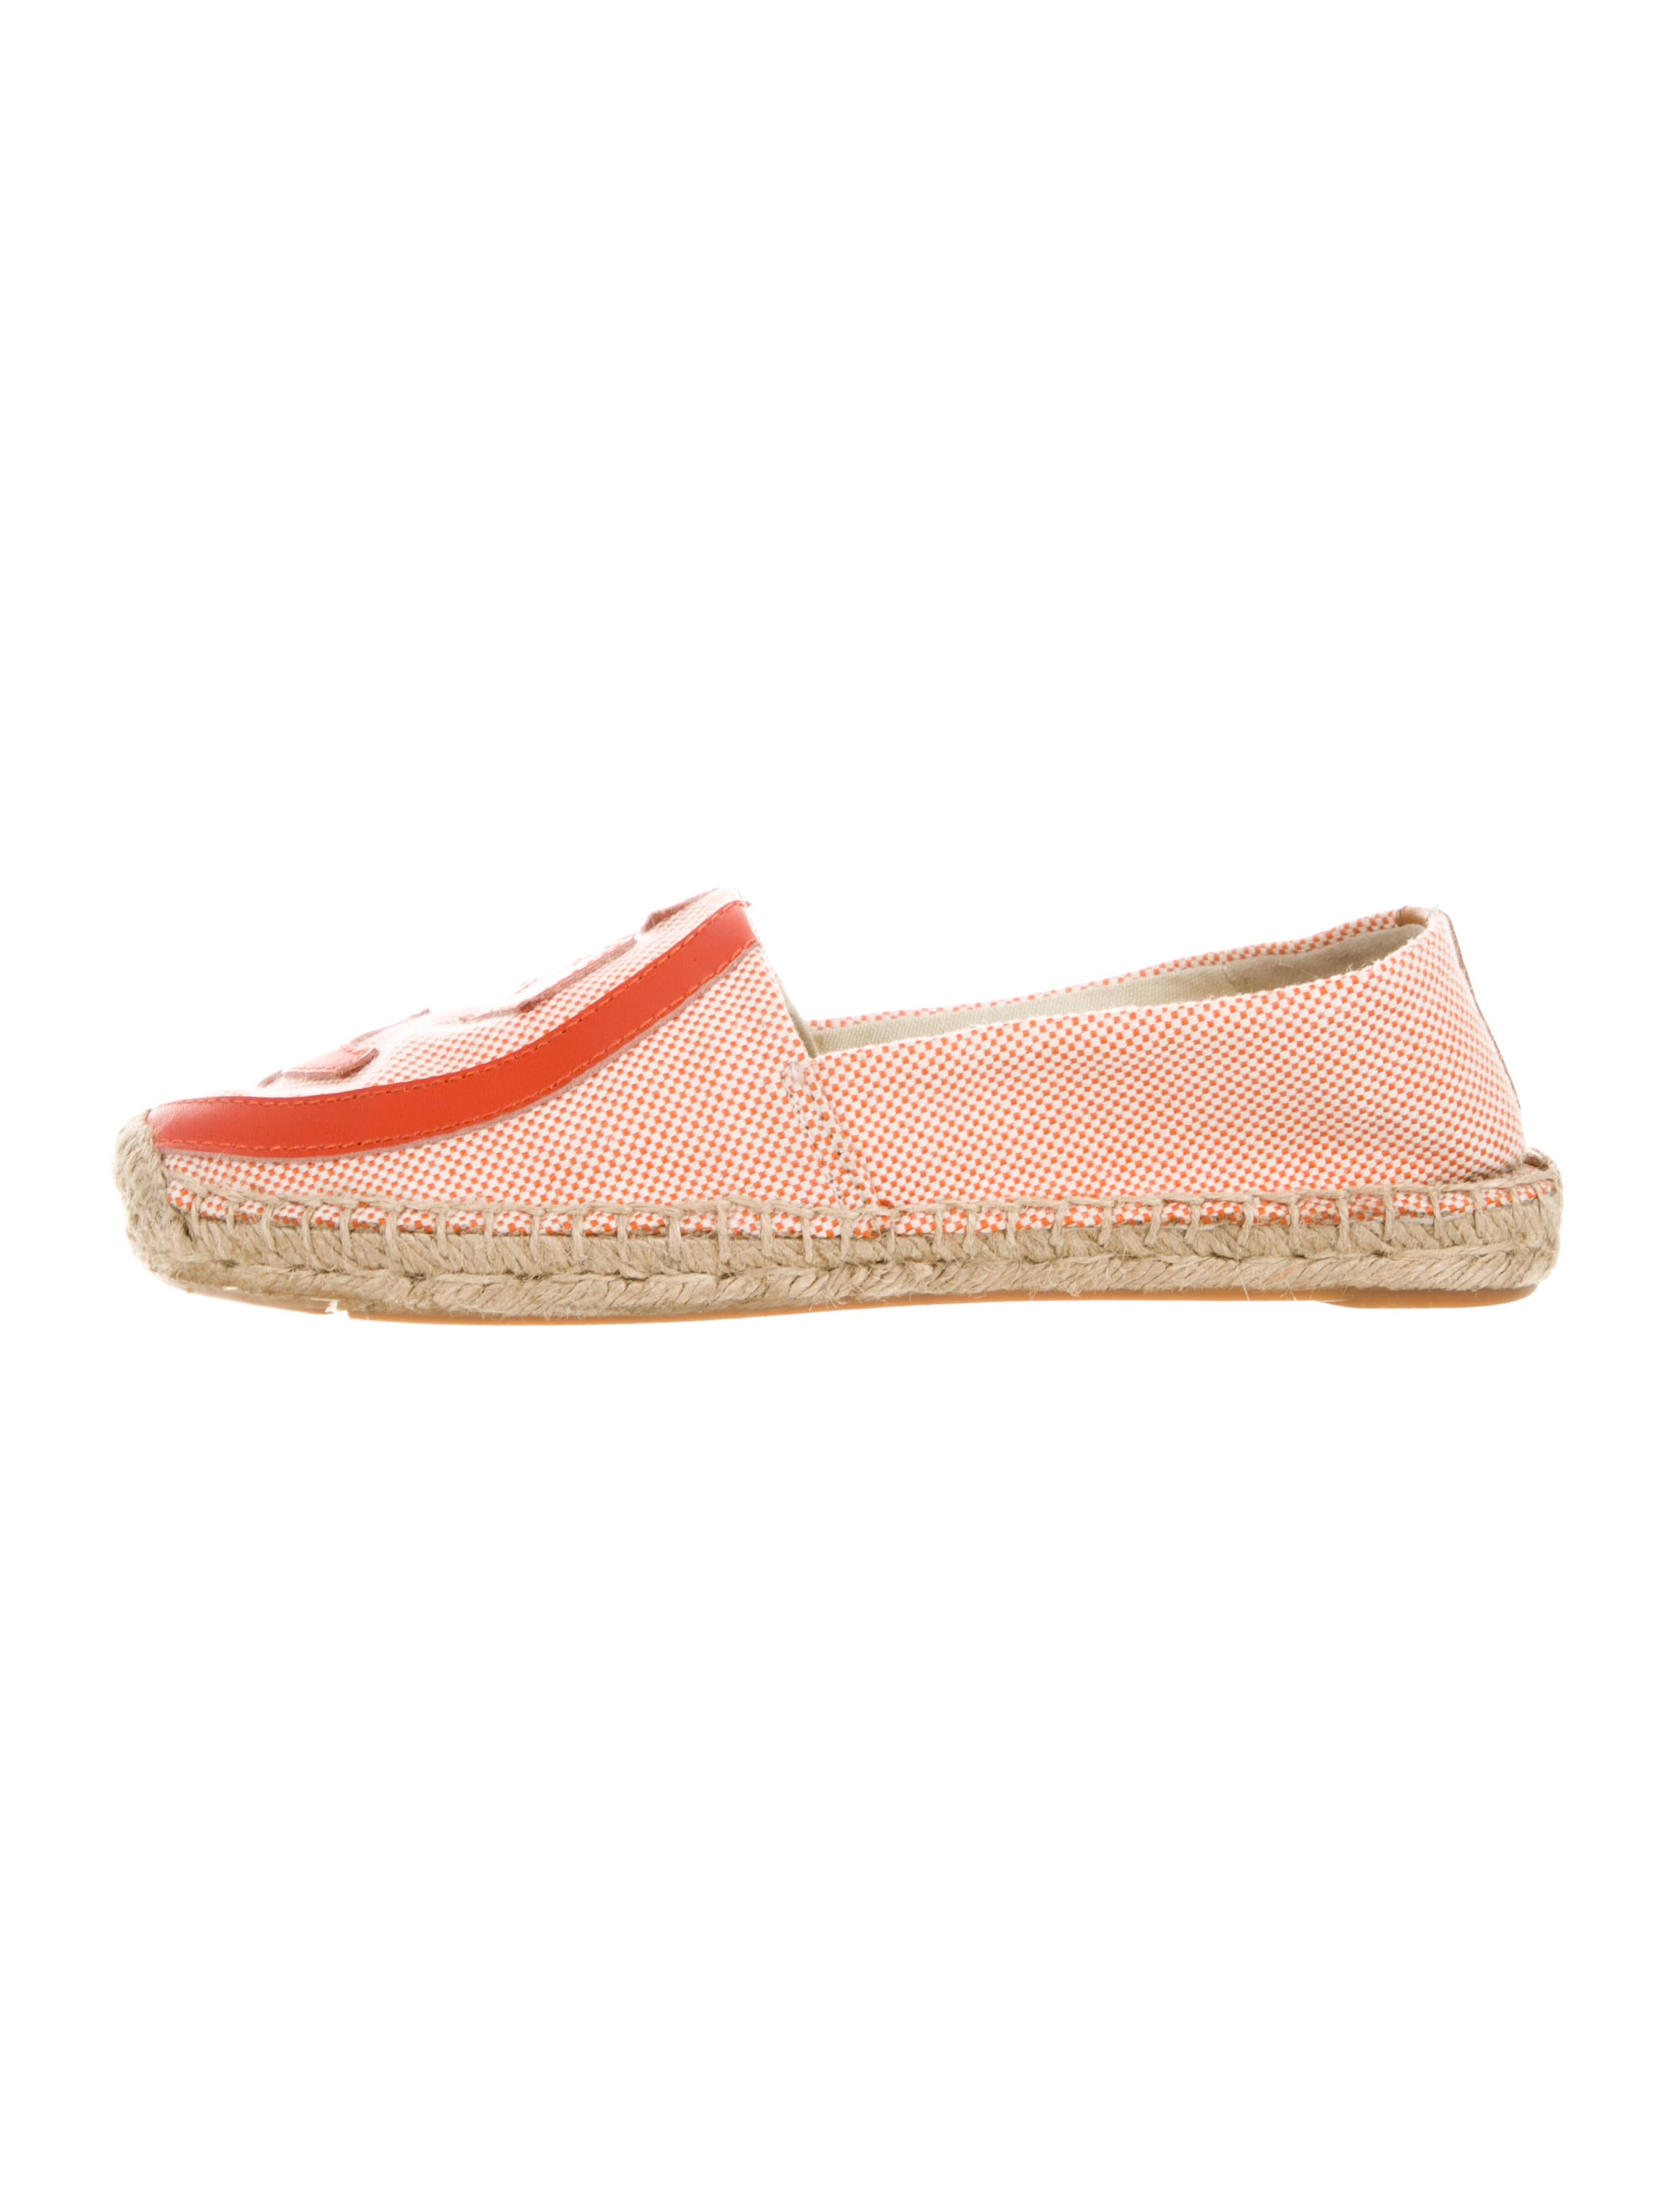 clearance countdown package looking for cheap price Tory Burch Woven Logo Espadrilles cheap sale the cheapest discount clearance buy cheap choice ButWzs